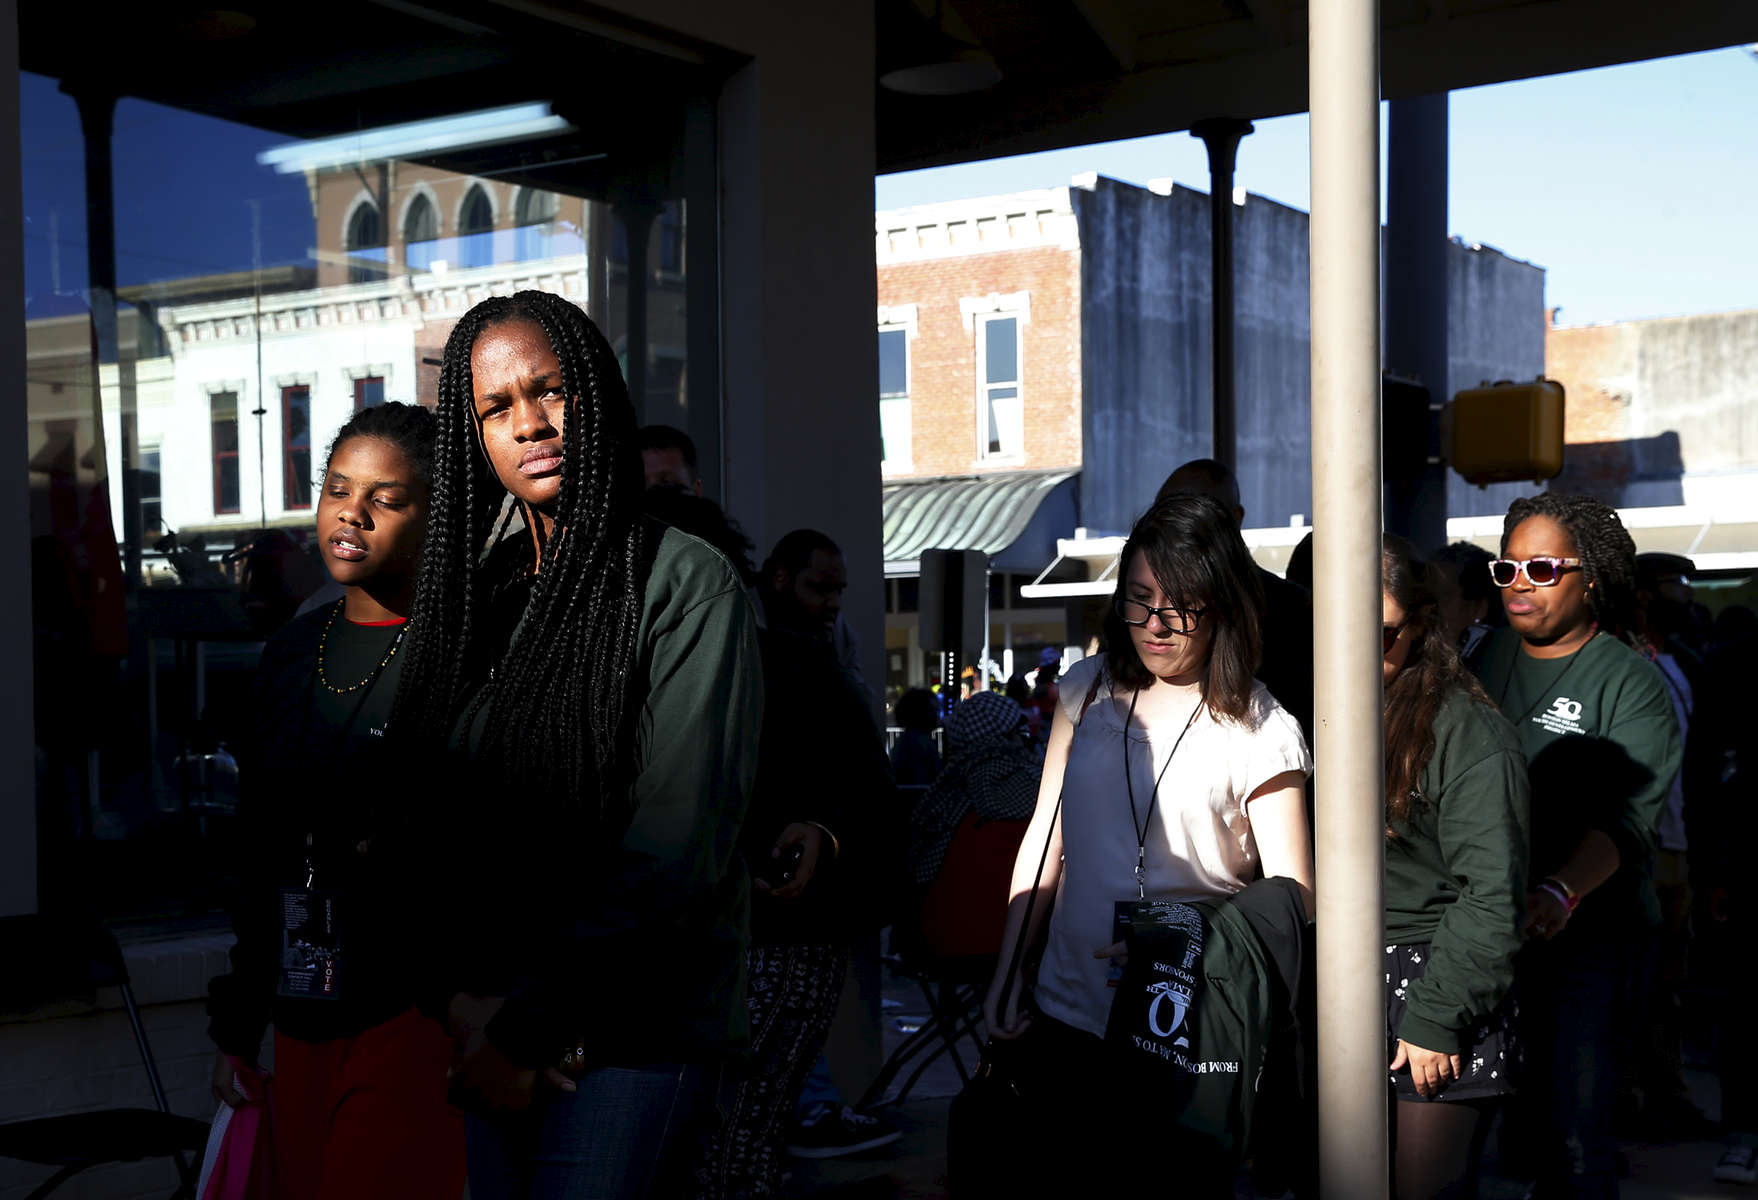 Selma, Alabama -- 3/07/2015-- UMass student Marie Cejour, 24, (2nd from L) links arms with Kaya Van Der Meer, 16, (L) as they walk down a main street in Selma, Alabama with the rest of the members of their group March 7, 2015.